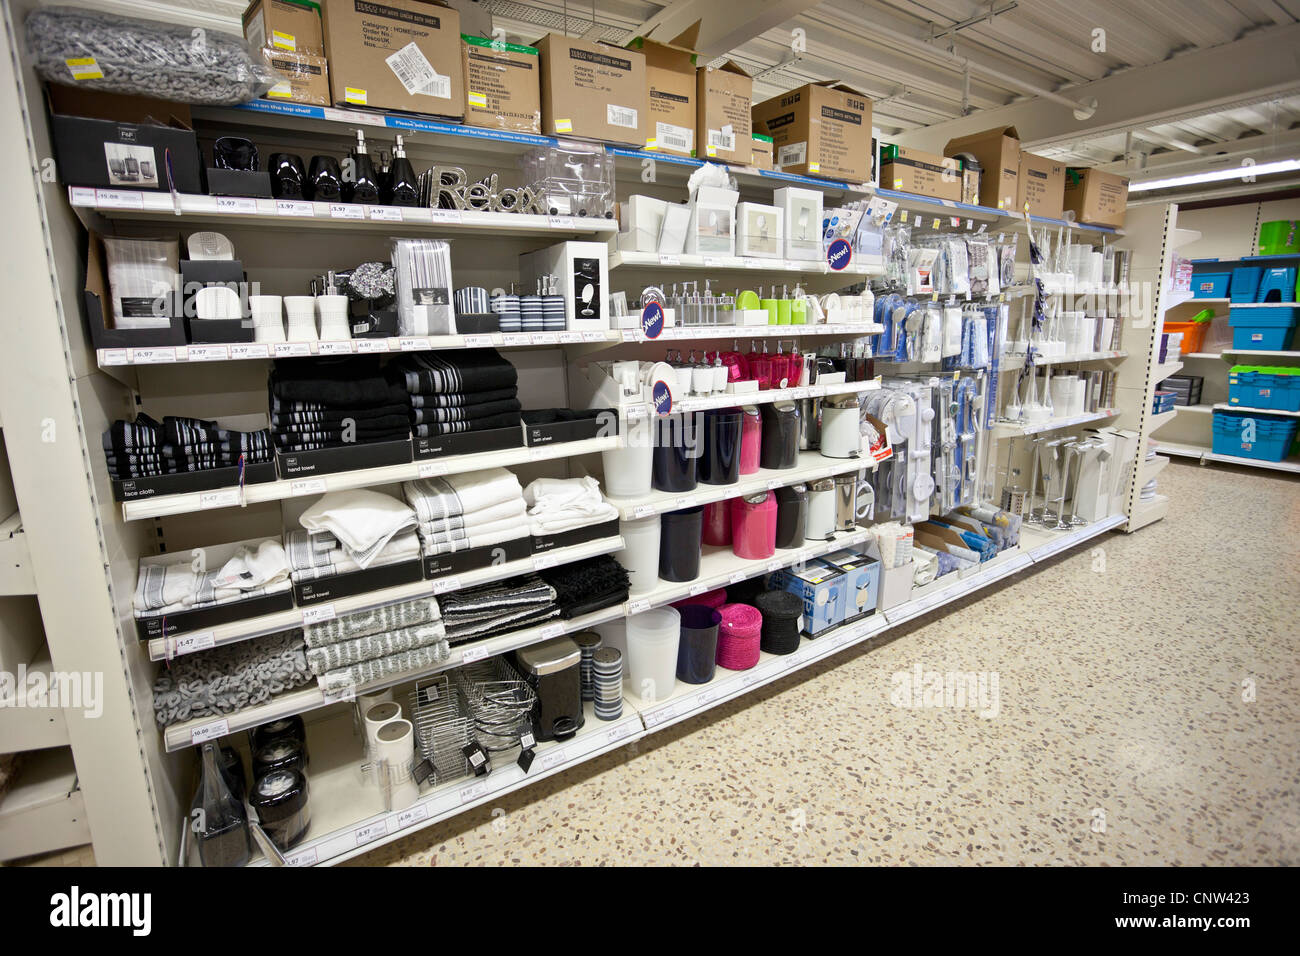 Bathroom Accessories And Toweling Shelves Of A Shop, London, England Stock Photo, Royalty Free